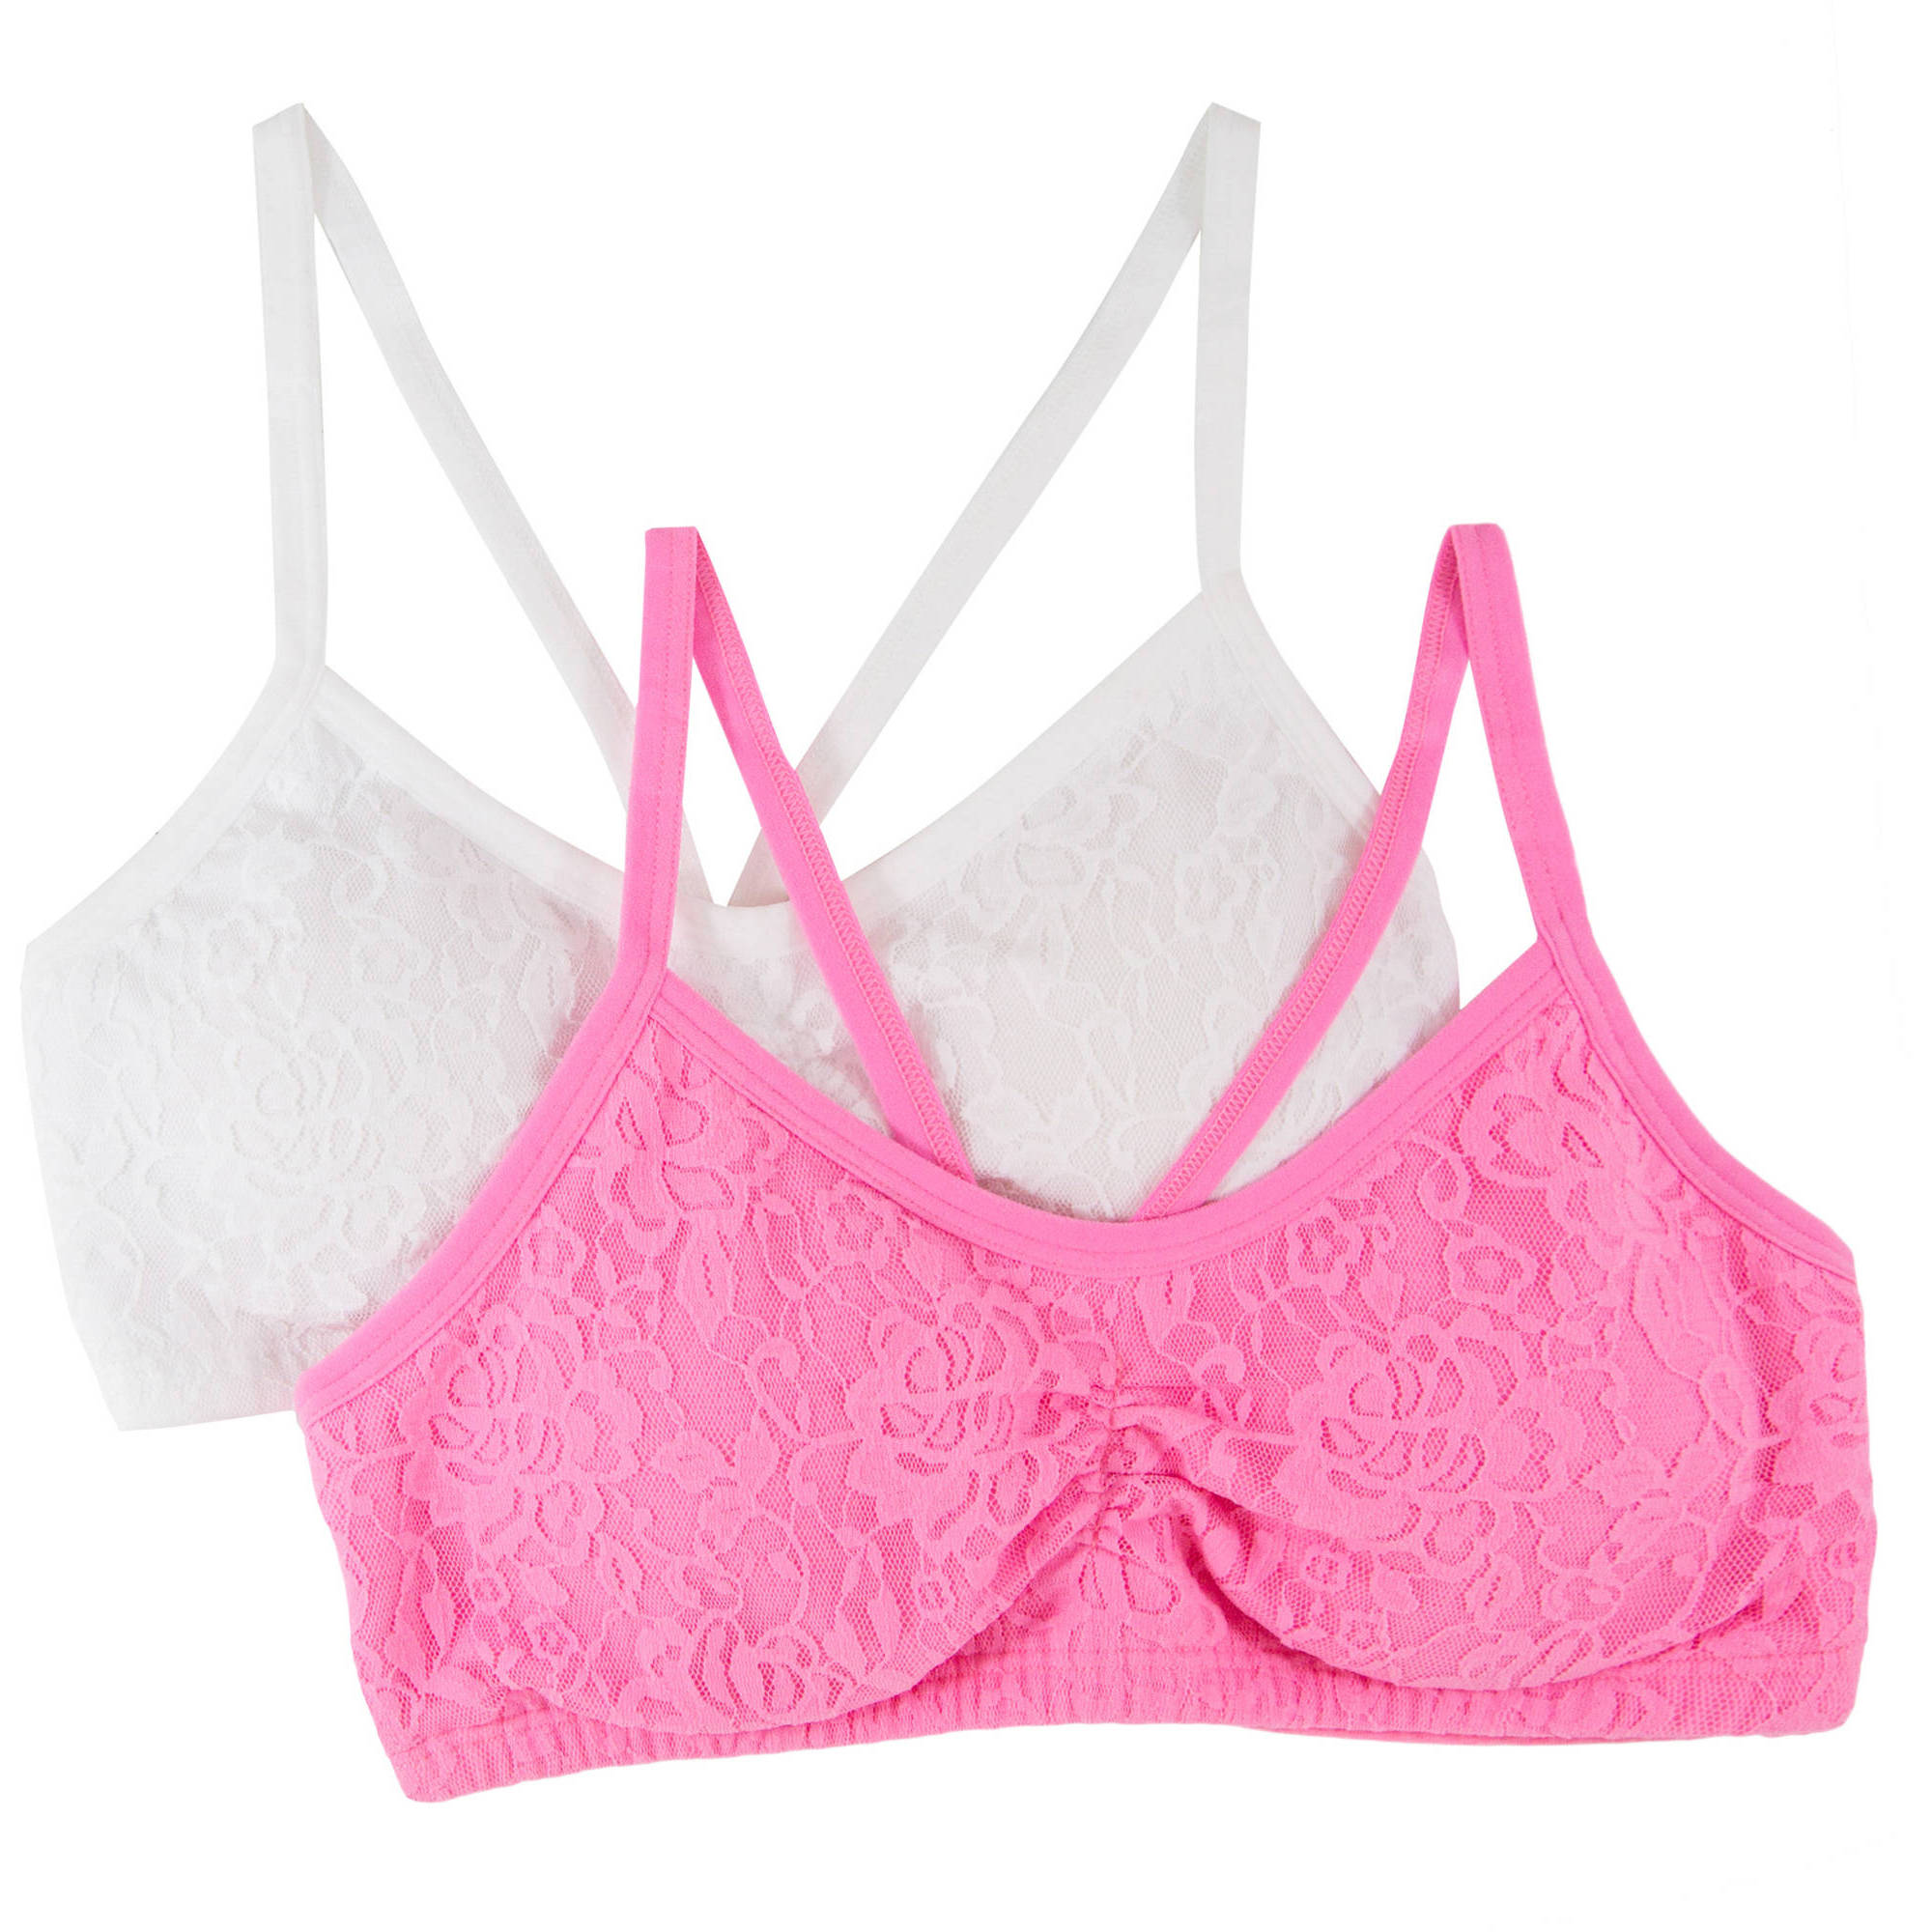 Fruit of the Loom Girls Lace Crop Top Bra, FT521, 2 Pack